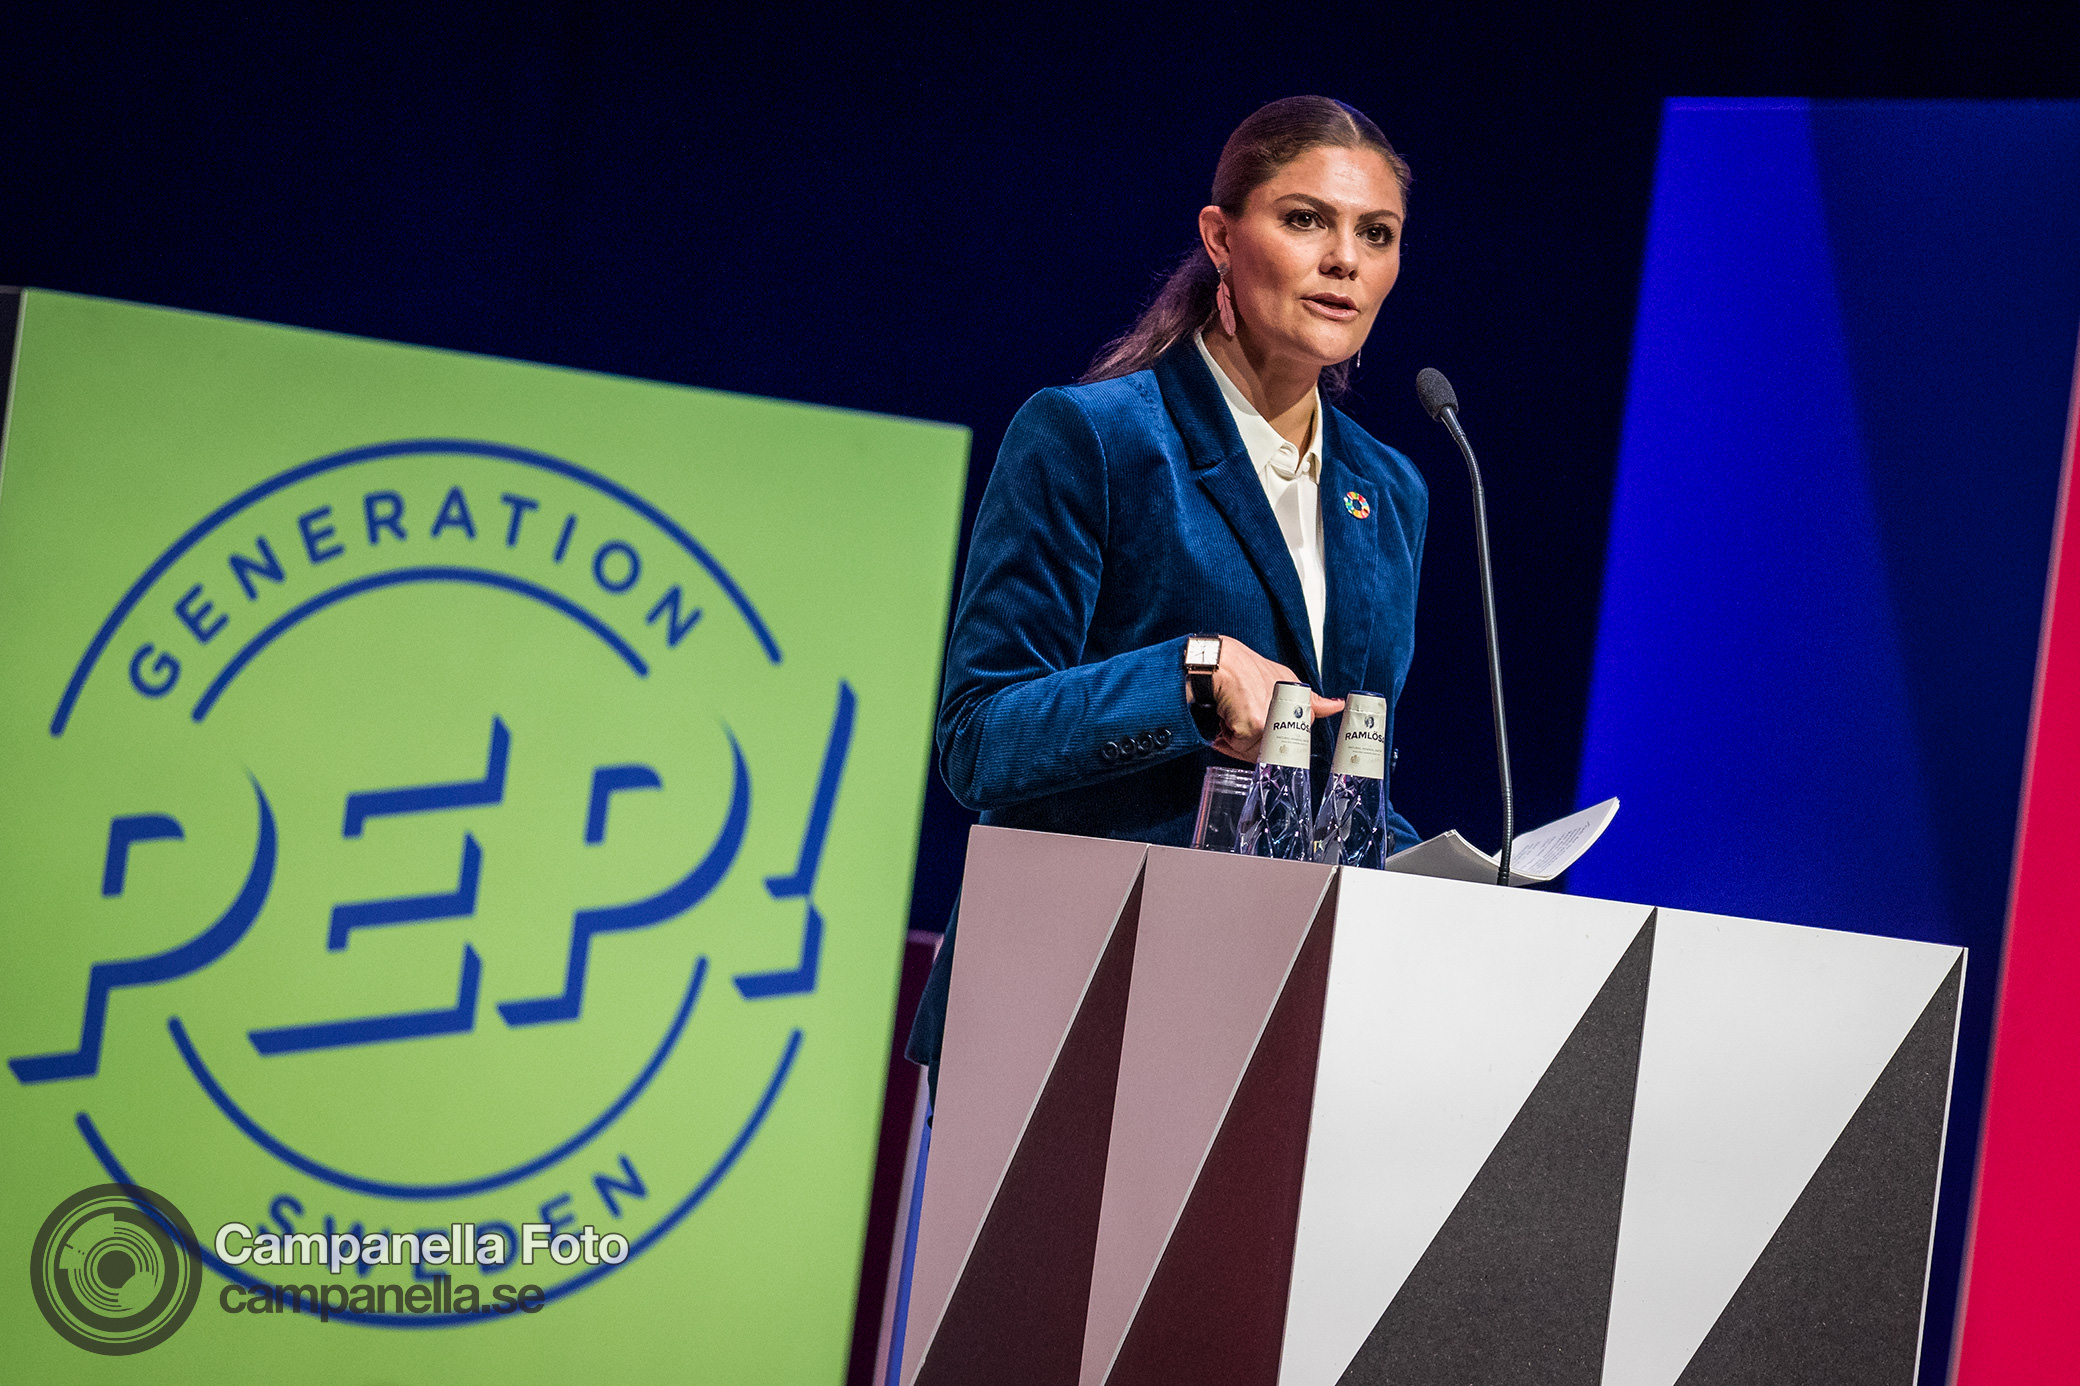 Princess Victoria speaks at Generation Pep - Michael Campanella Photography